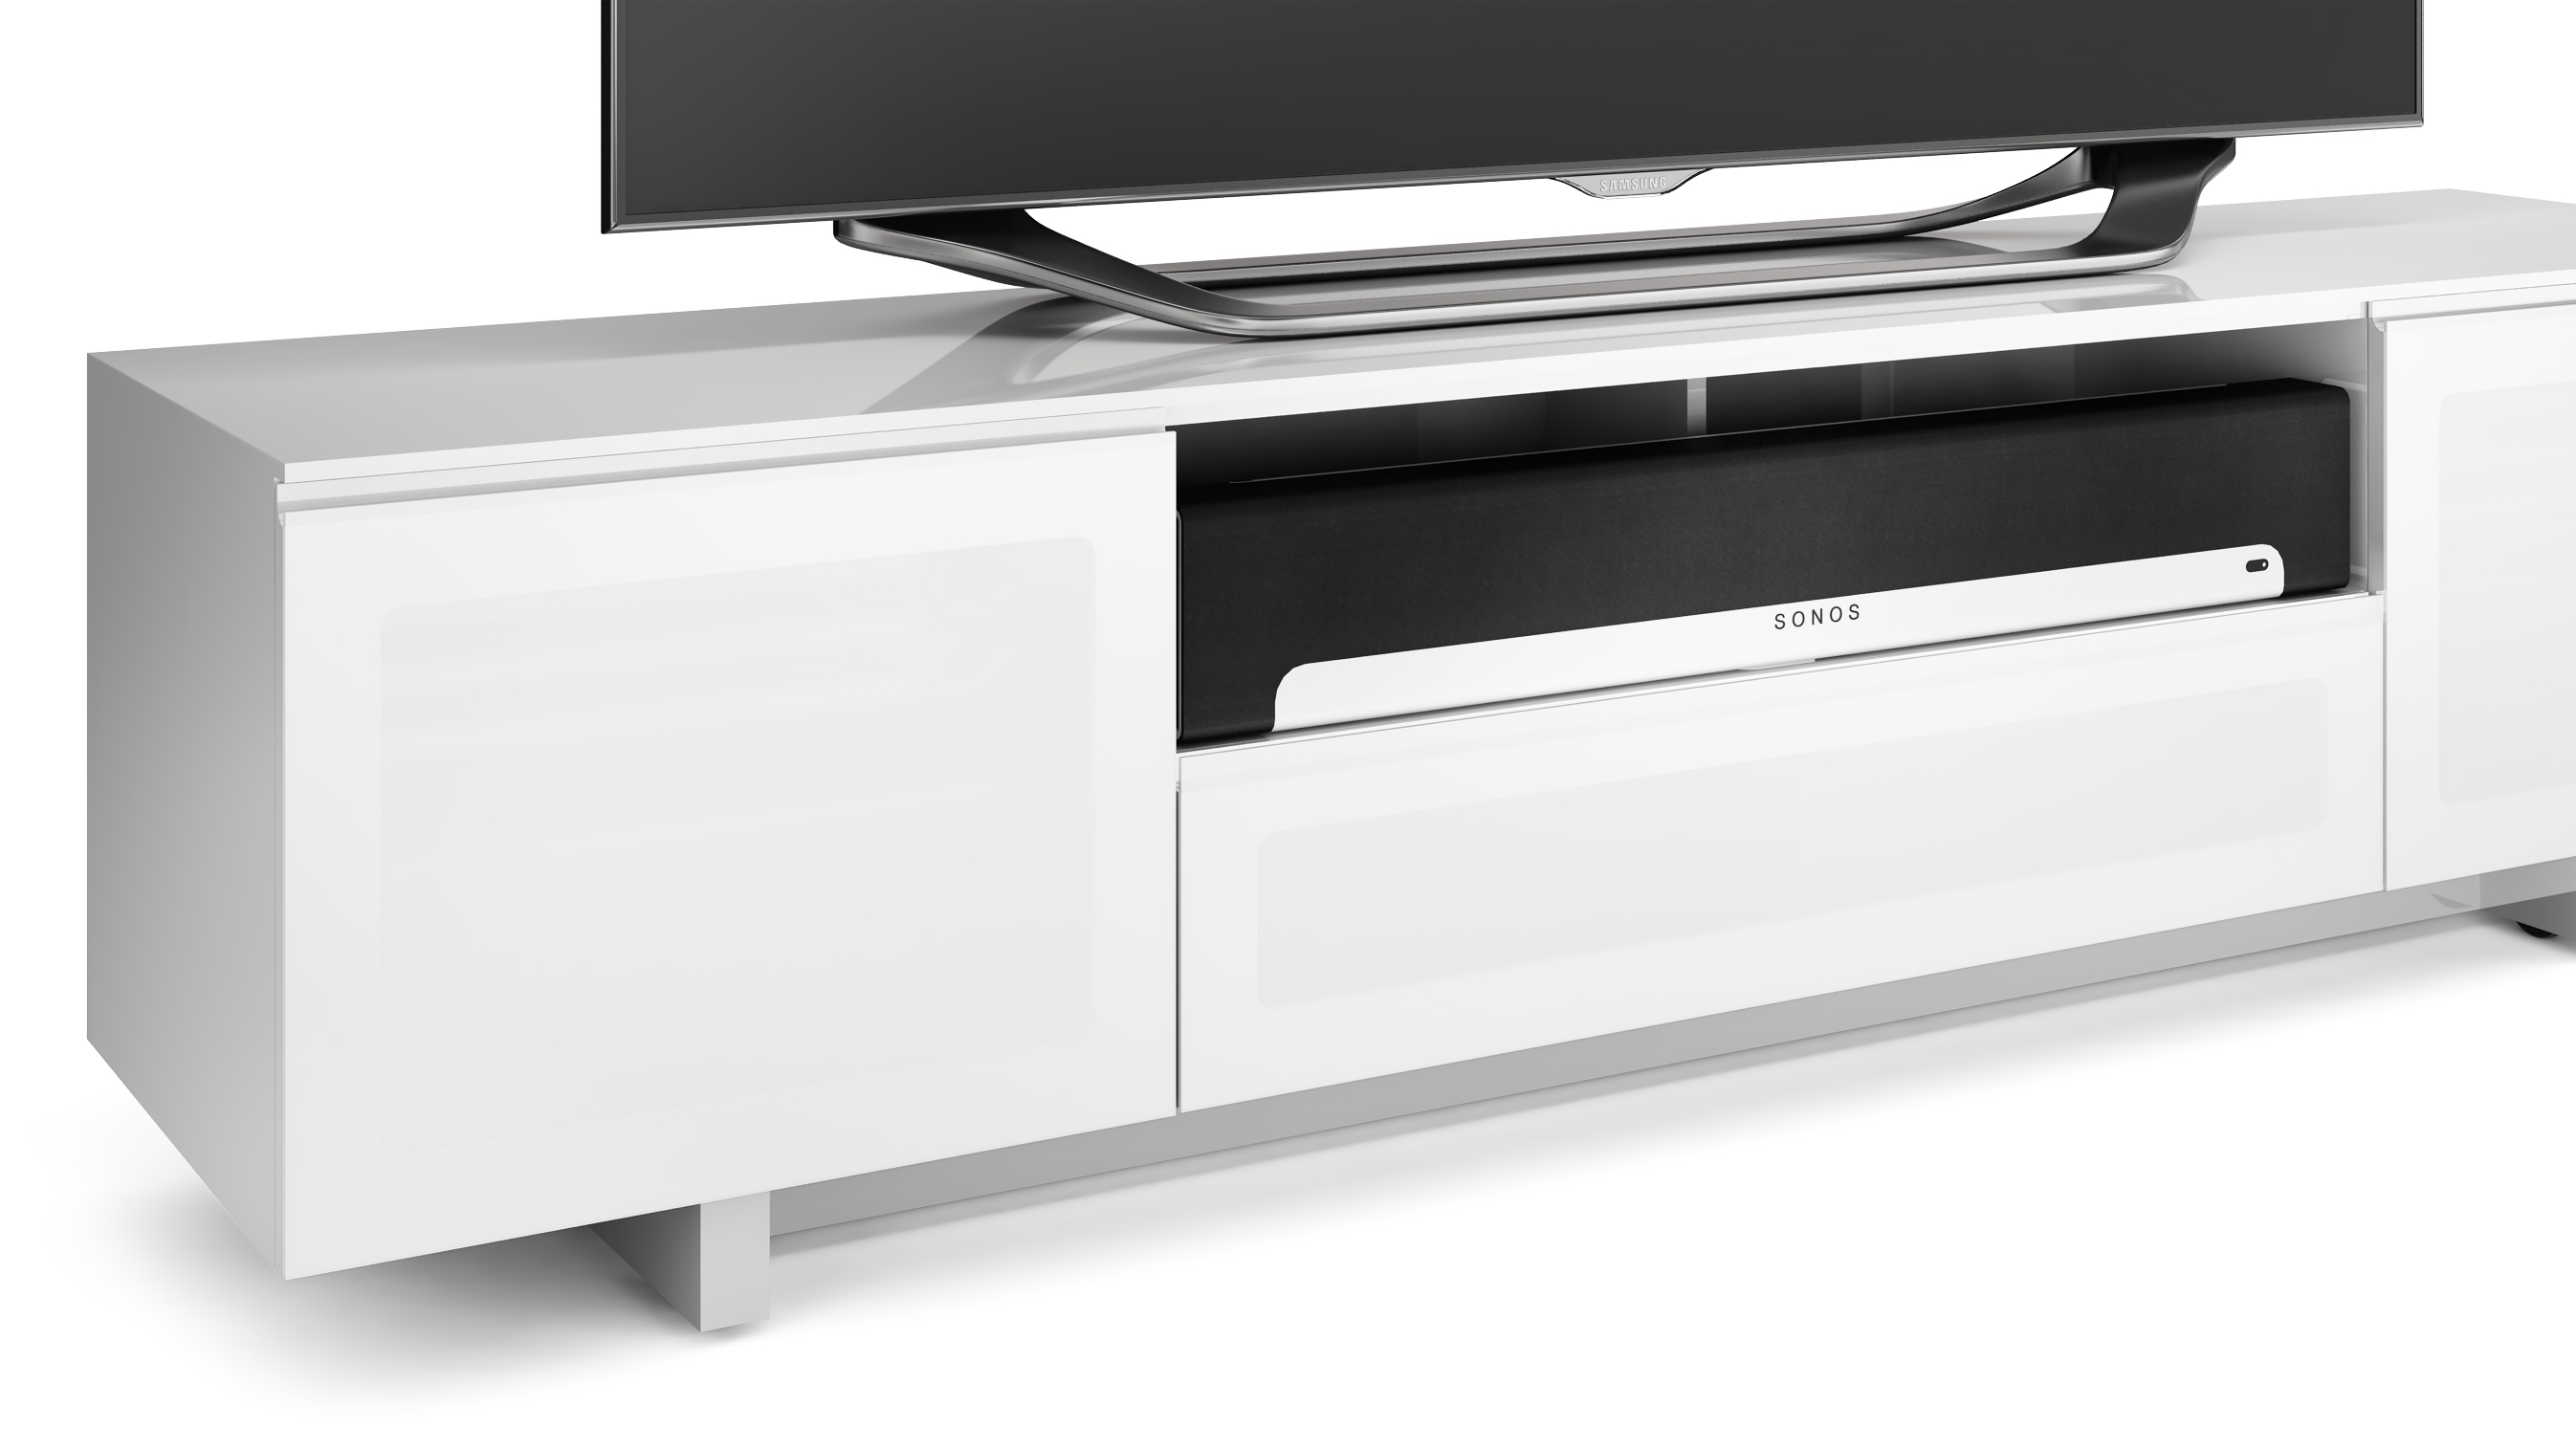 cantilever stands white room black furniture cupboard full for slim and tv sauder at unit credenza corner cream bdi glass cabinet clear stand harbor media uk gloss wood entertainment modern buy size screens of inch view target large living flat acrylic kids